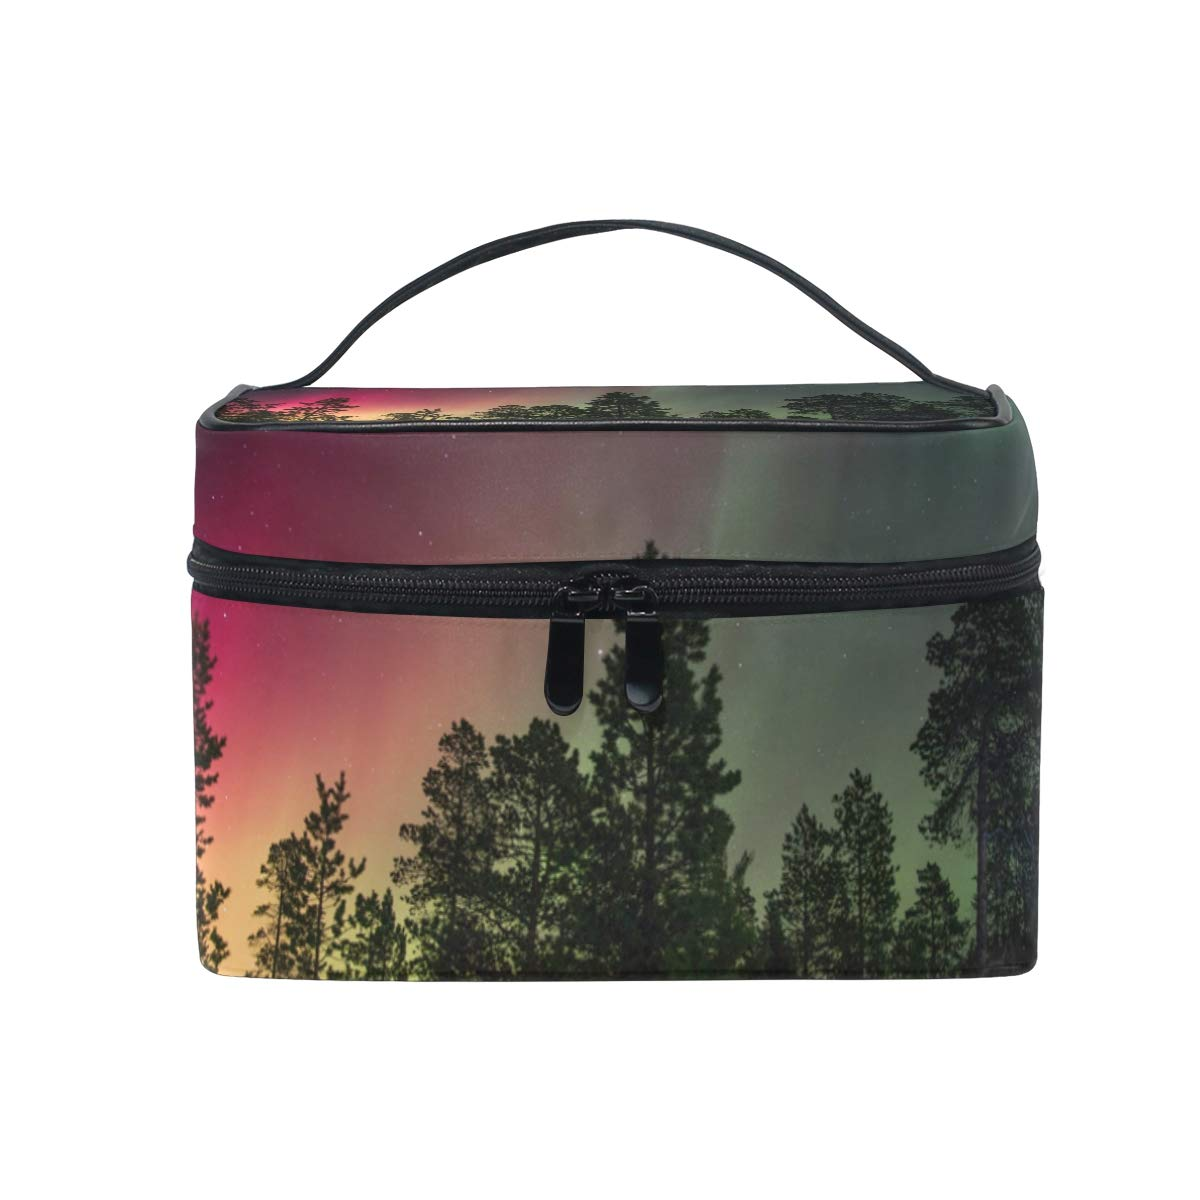 f6d5fc9fac68 Amazon.com : Dragon Sword Forest Aurora Borealis Cosmetic Toilet Bag ...